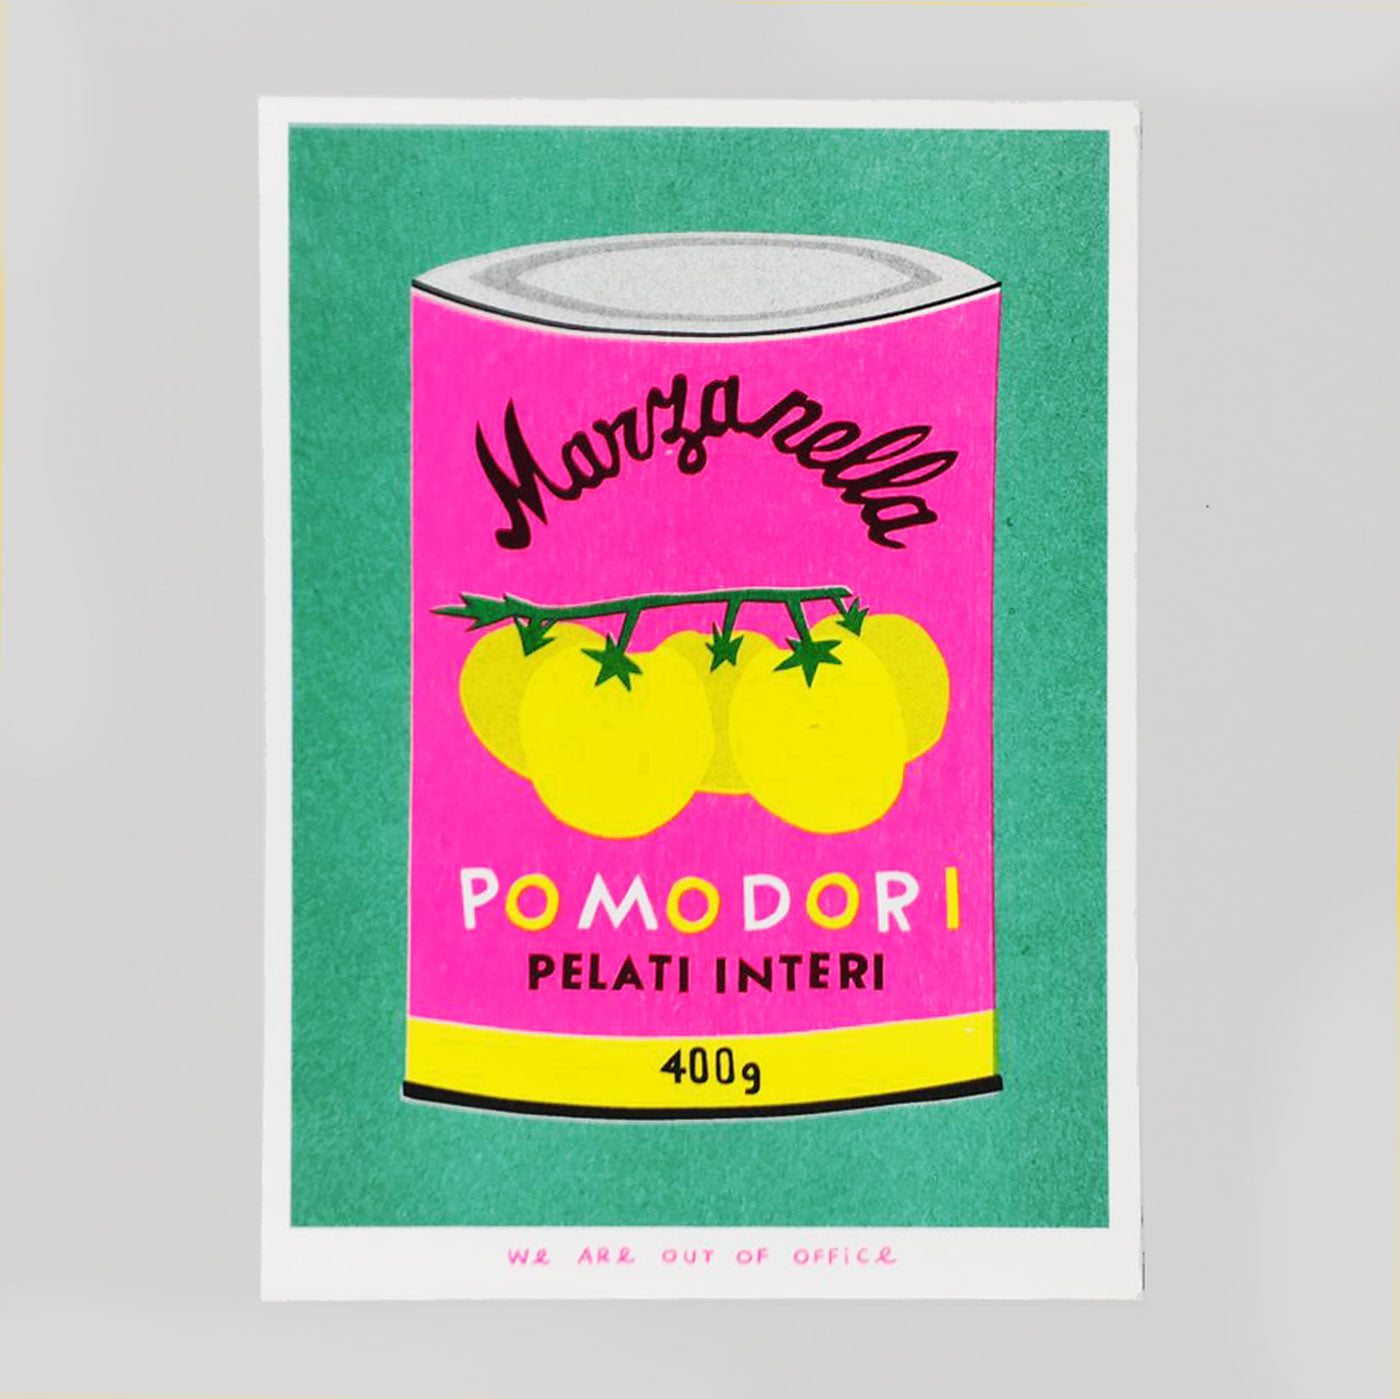 A Can Of Pomodori Riso Print - We Are Out Of Office